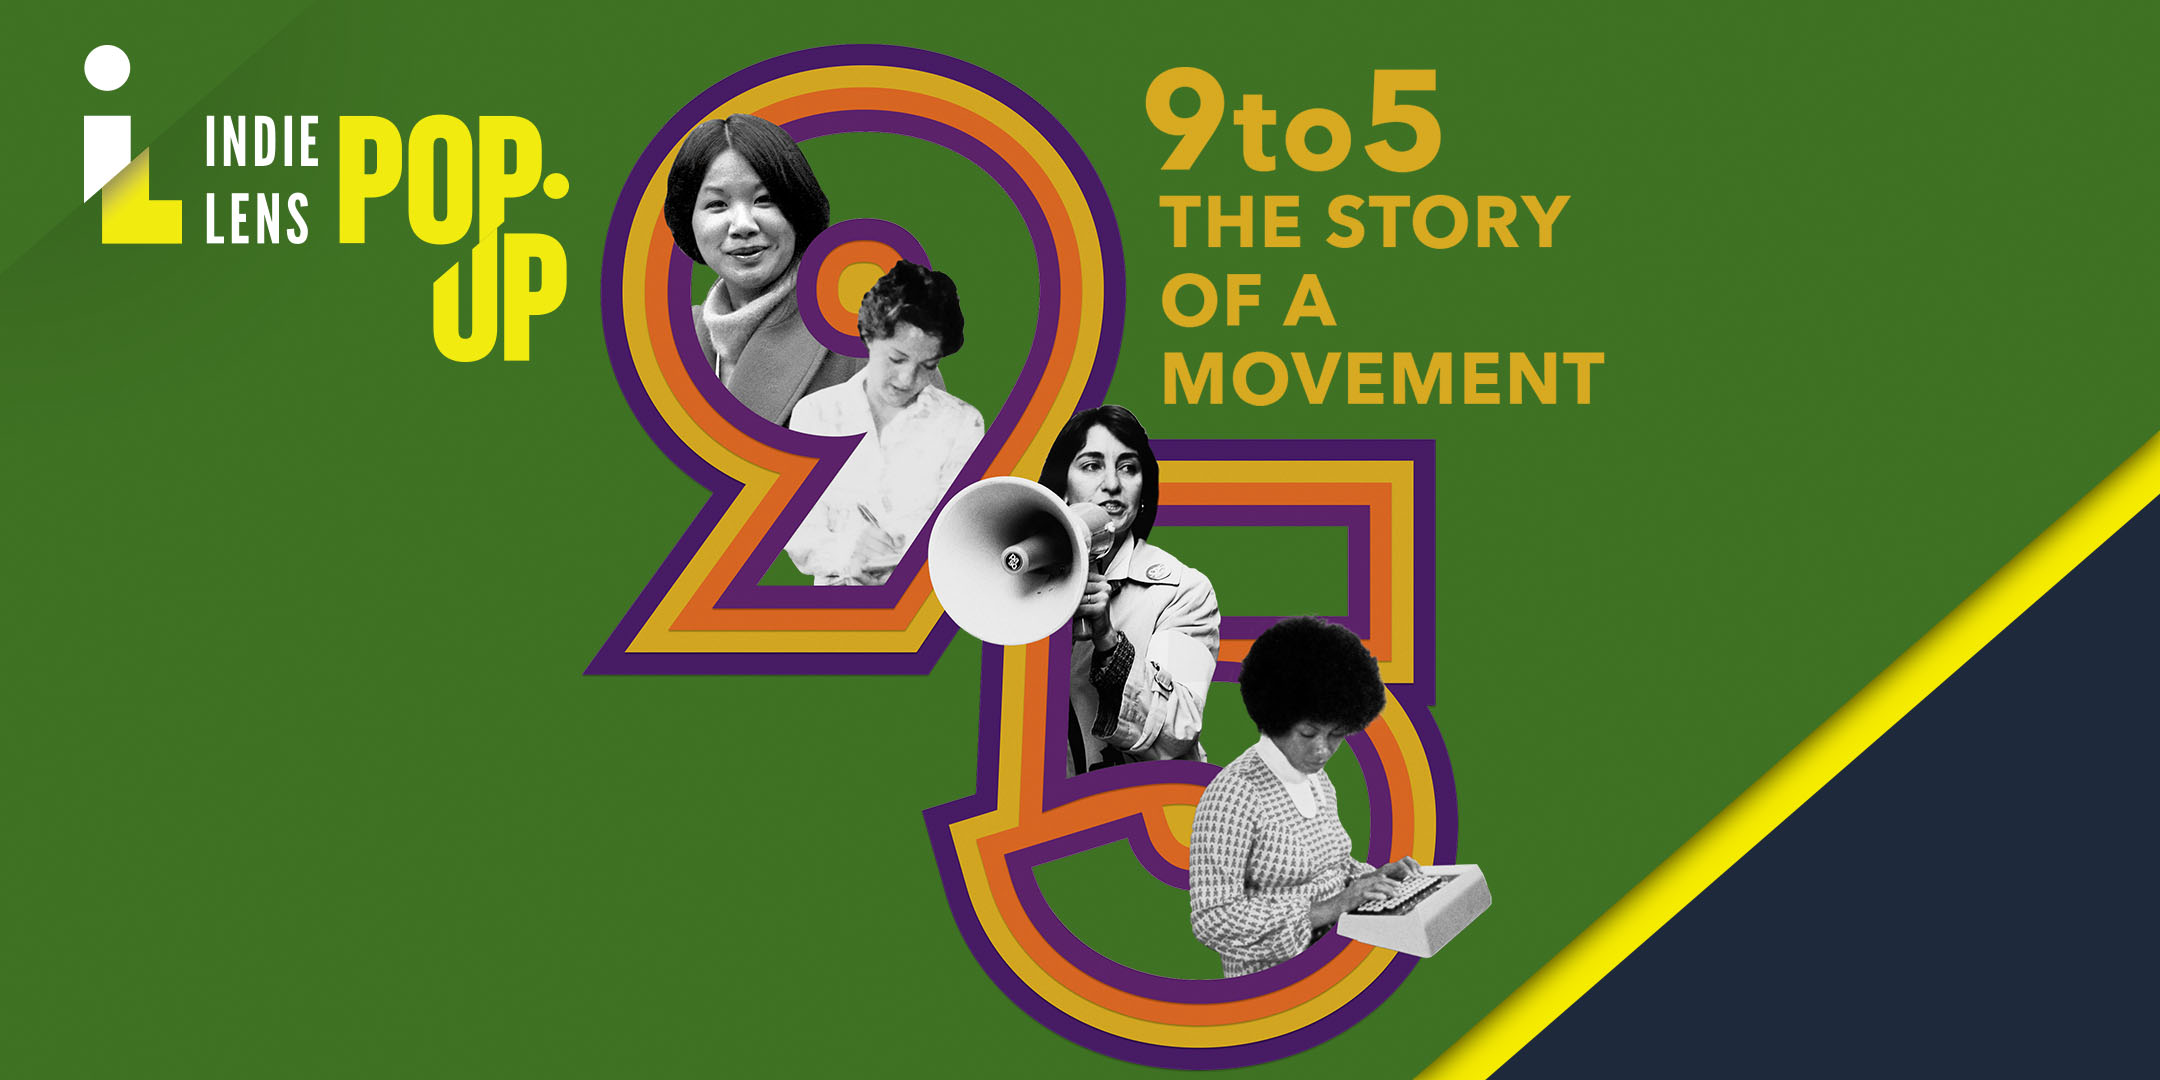 Indie Lens Pop-Up: 9to5: The Story of a Movement